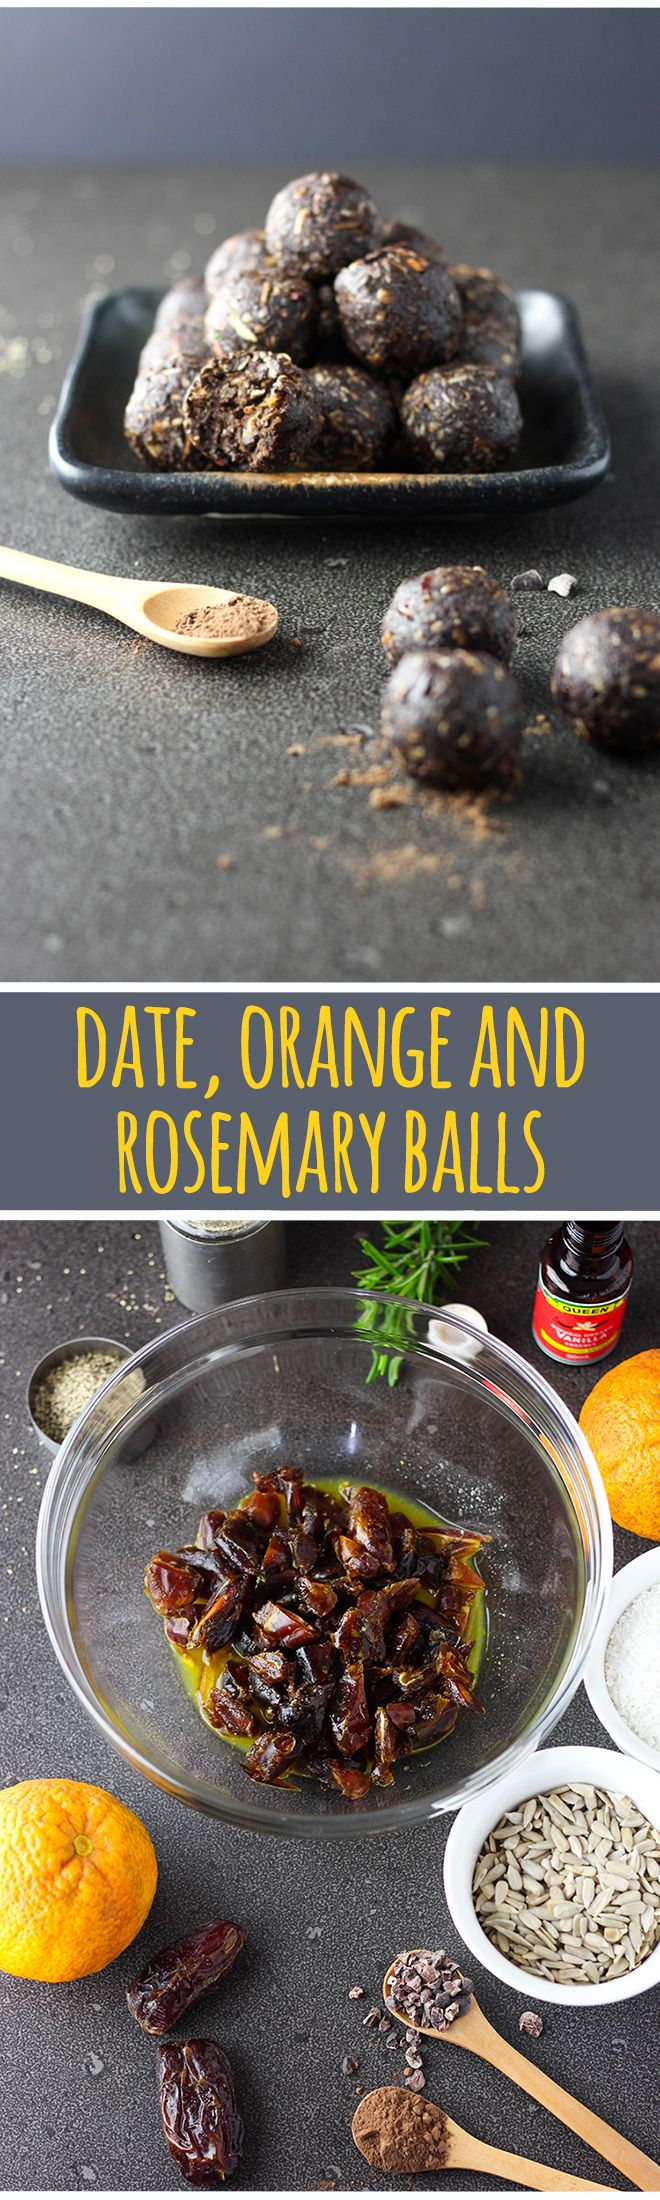 Truffle or bliss ball? Who even knows any more. Chocolatey date, orange and rosemary balls are dark and delicious, grown up and a little bit healthy. #vegan #vegetarian #glutenfree #dairyfree #dessert #sweets #dates #orange #cacao #recipes